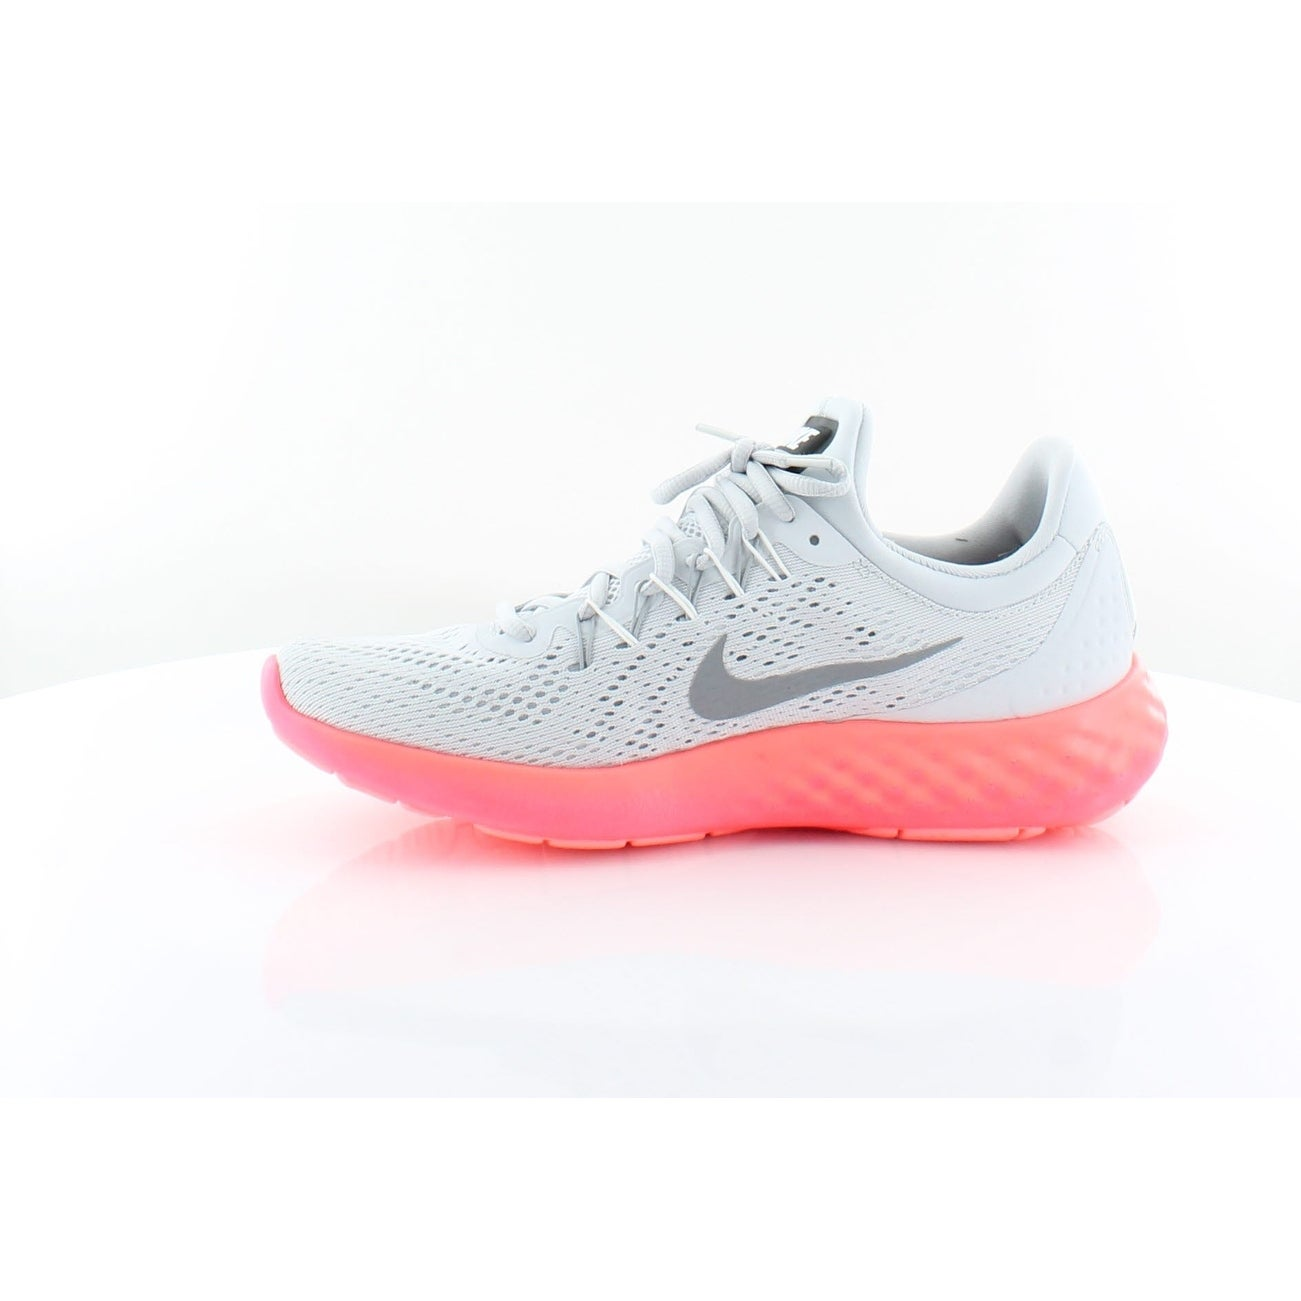 hot sale online 243ef 22113 Shop Nike Lunar Skyelux Women s Athletic Pure Platinum Stealth - 11 - Free  Shipping Today - Overstock - 25656118